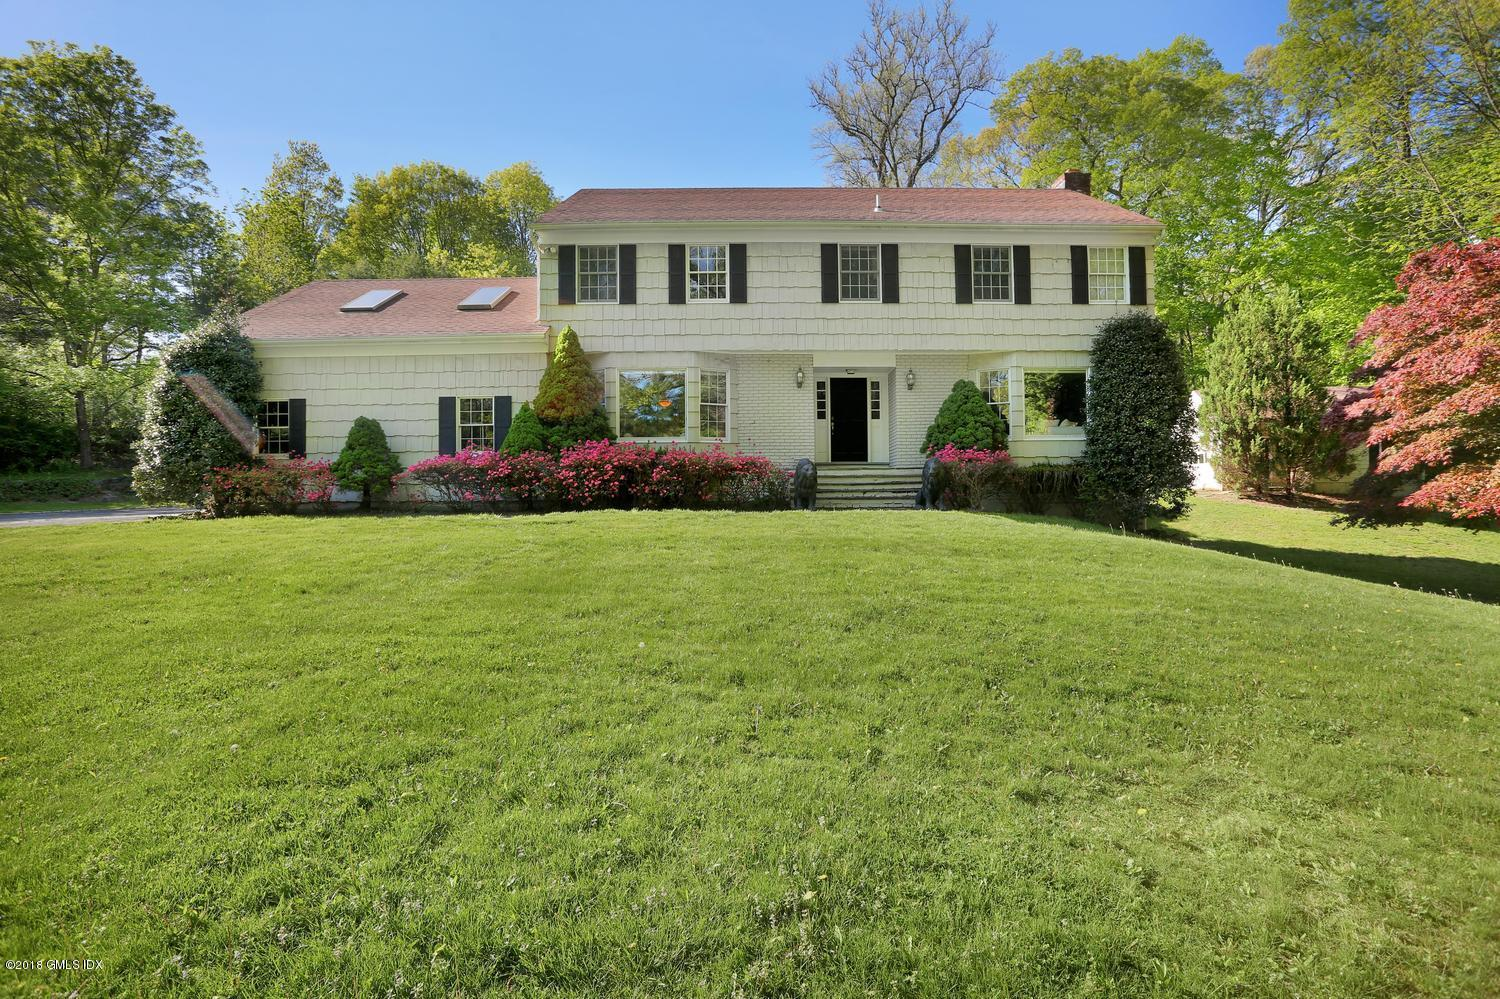 17 Witherell Drive,Greenwich,Connecticut 06831,4 Bedrooms Bedrooms,3 BathroomsBathrooms,Single family,Witherell,103559